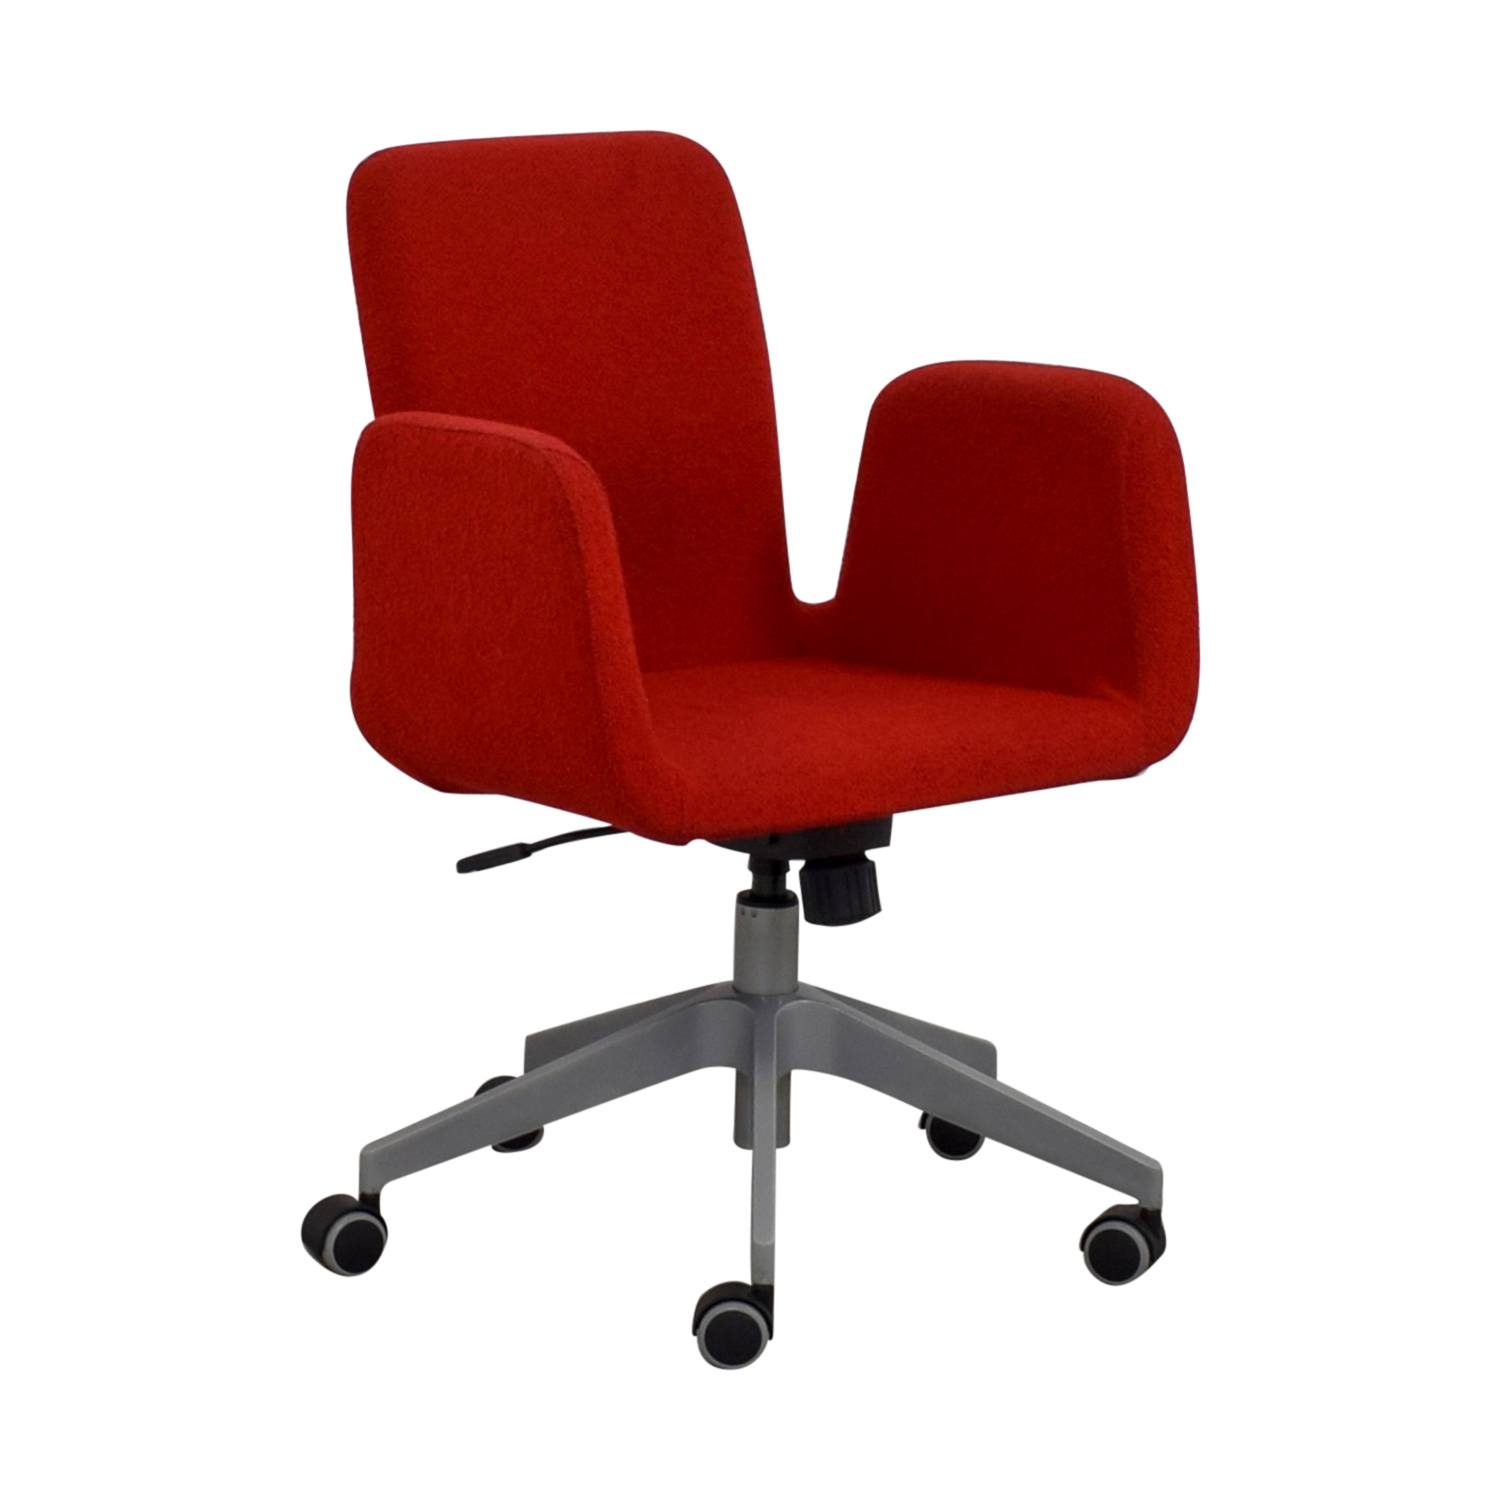 ... IKEA Patrik Red Rolling Desk Chair / Chairs ...